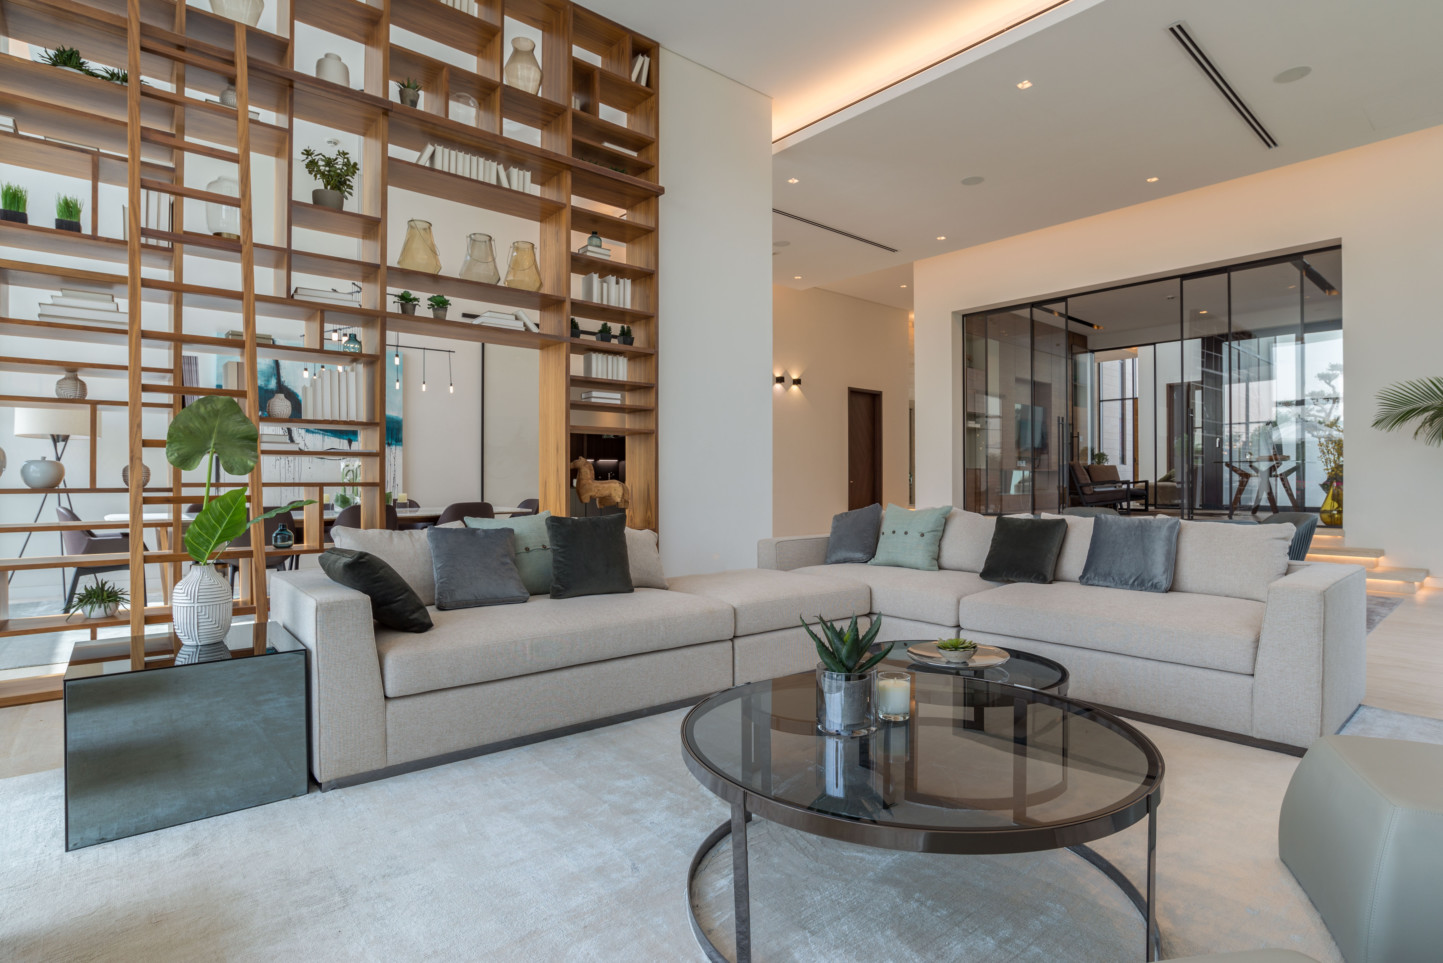 A Jumeirah Golf Estates Hillside Villa With An Area Of 16,500 Sq Ft. This  Signature Residence Was Sold For Dh26.96 Million Or Dh1,694 Per Square Foot  Image ...